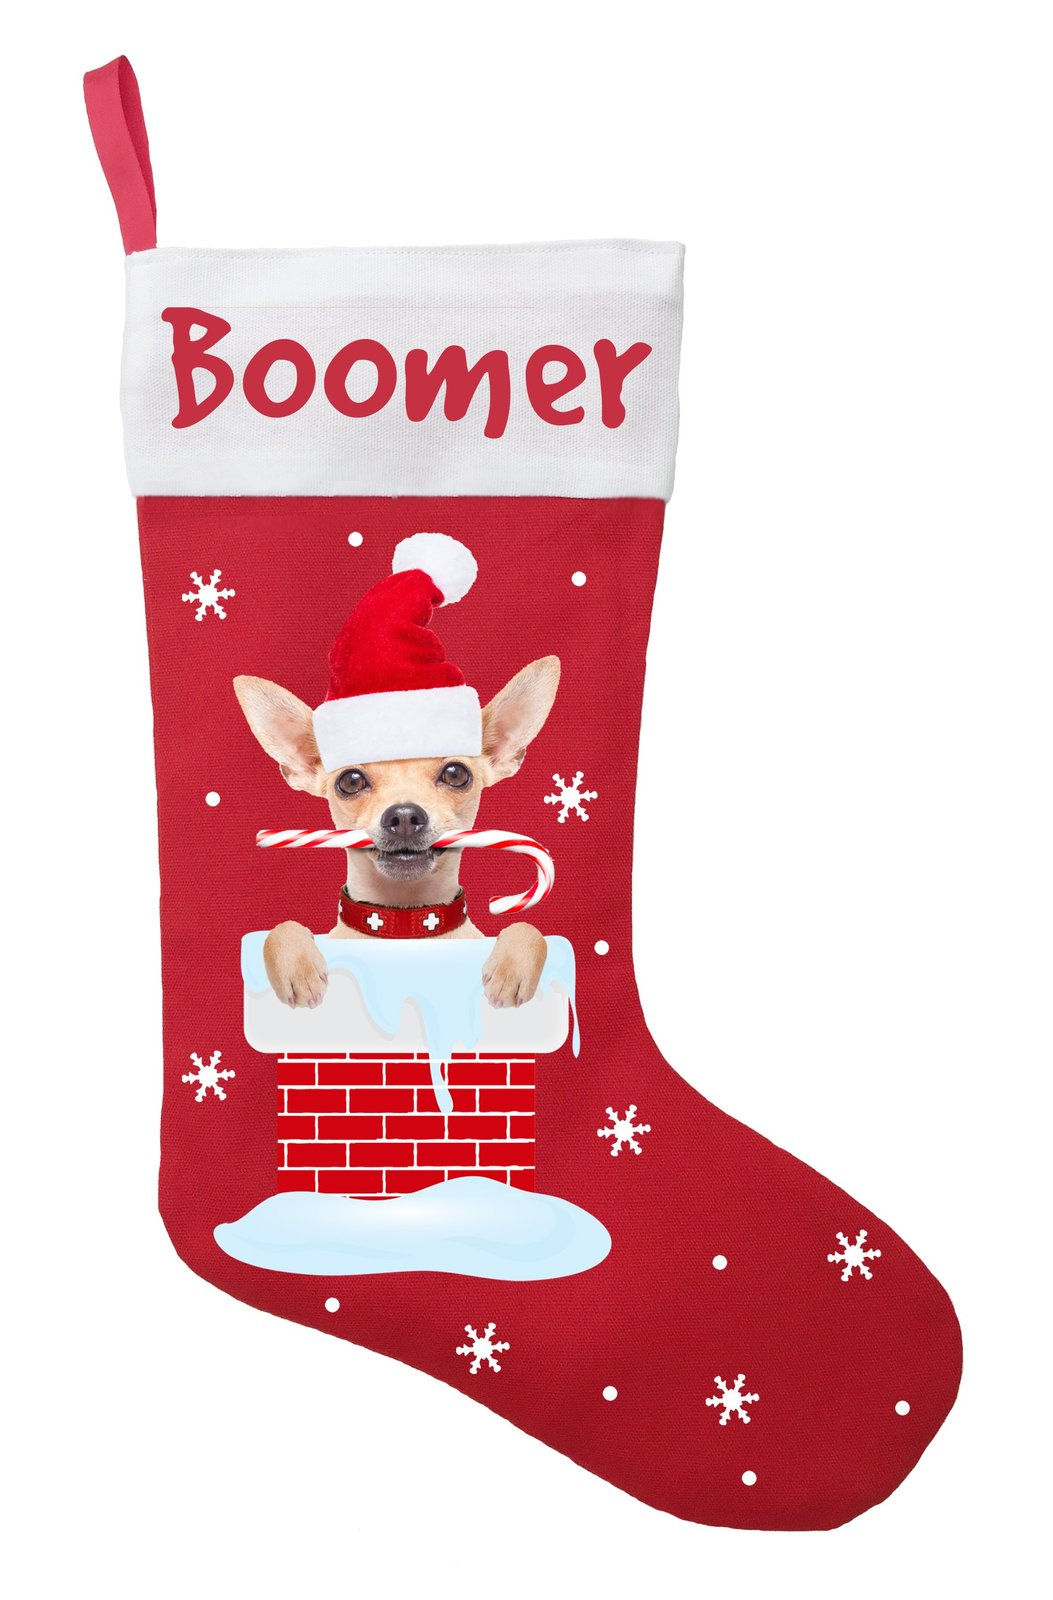 Chihuahua Christmas Stocking - Personalized Chihuahua Stocking - Red